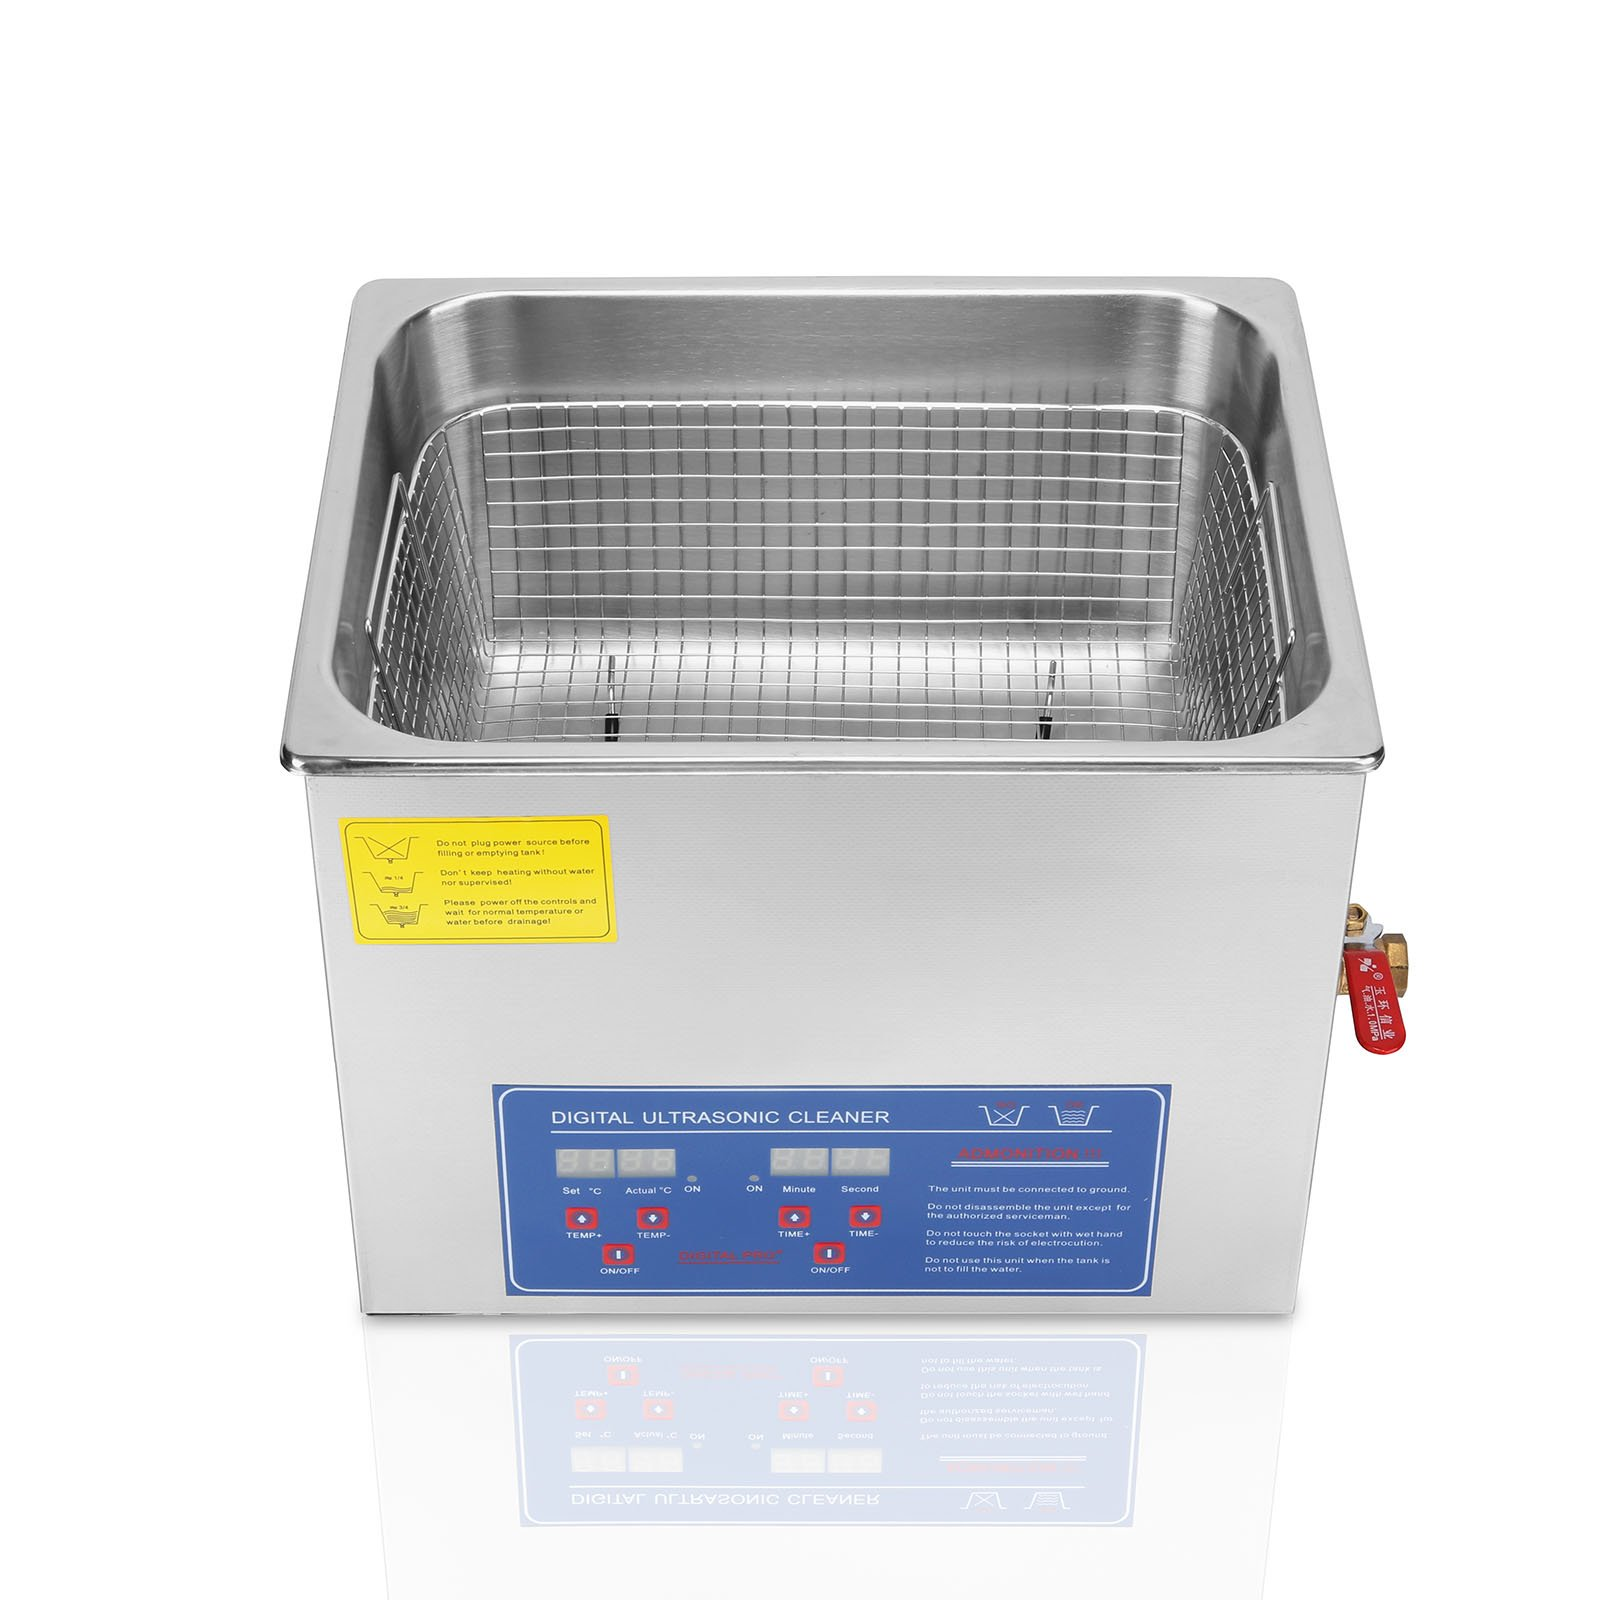 OrangeA Ultrasonic Cleaner Ultrasonic Cleaner Solution Heated Ultrasonic Cleaner 15L for Jewelry Watch Cleaning Industry Heated Heater with Drainage System (15 Liter)